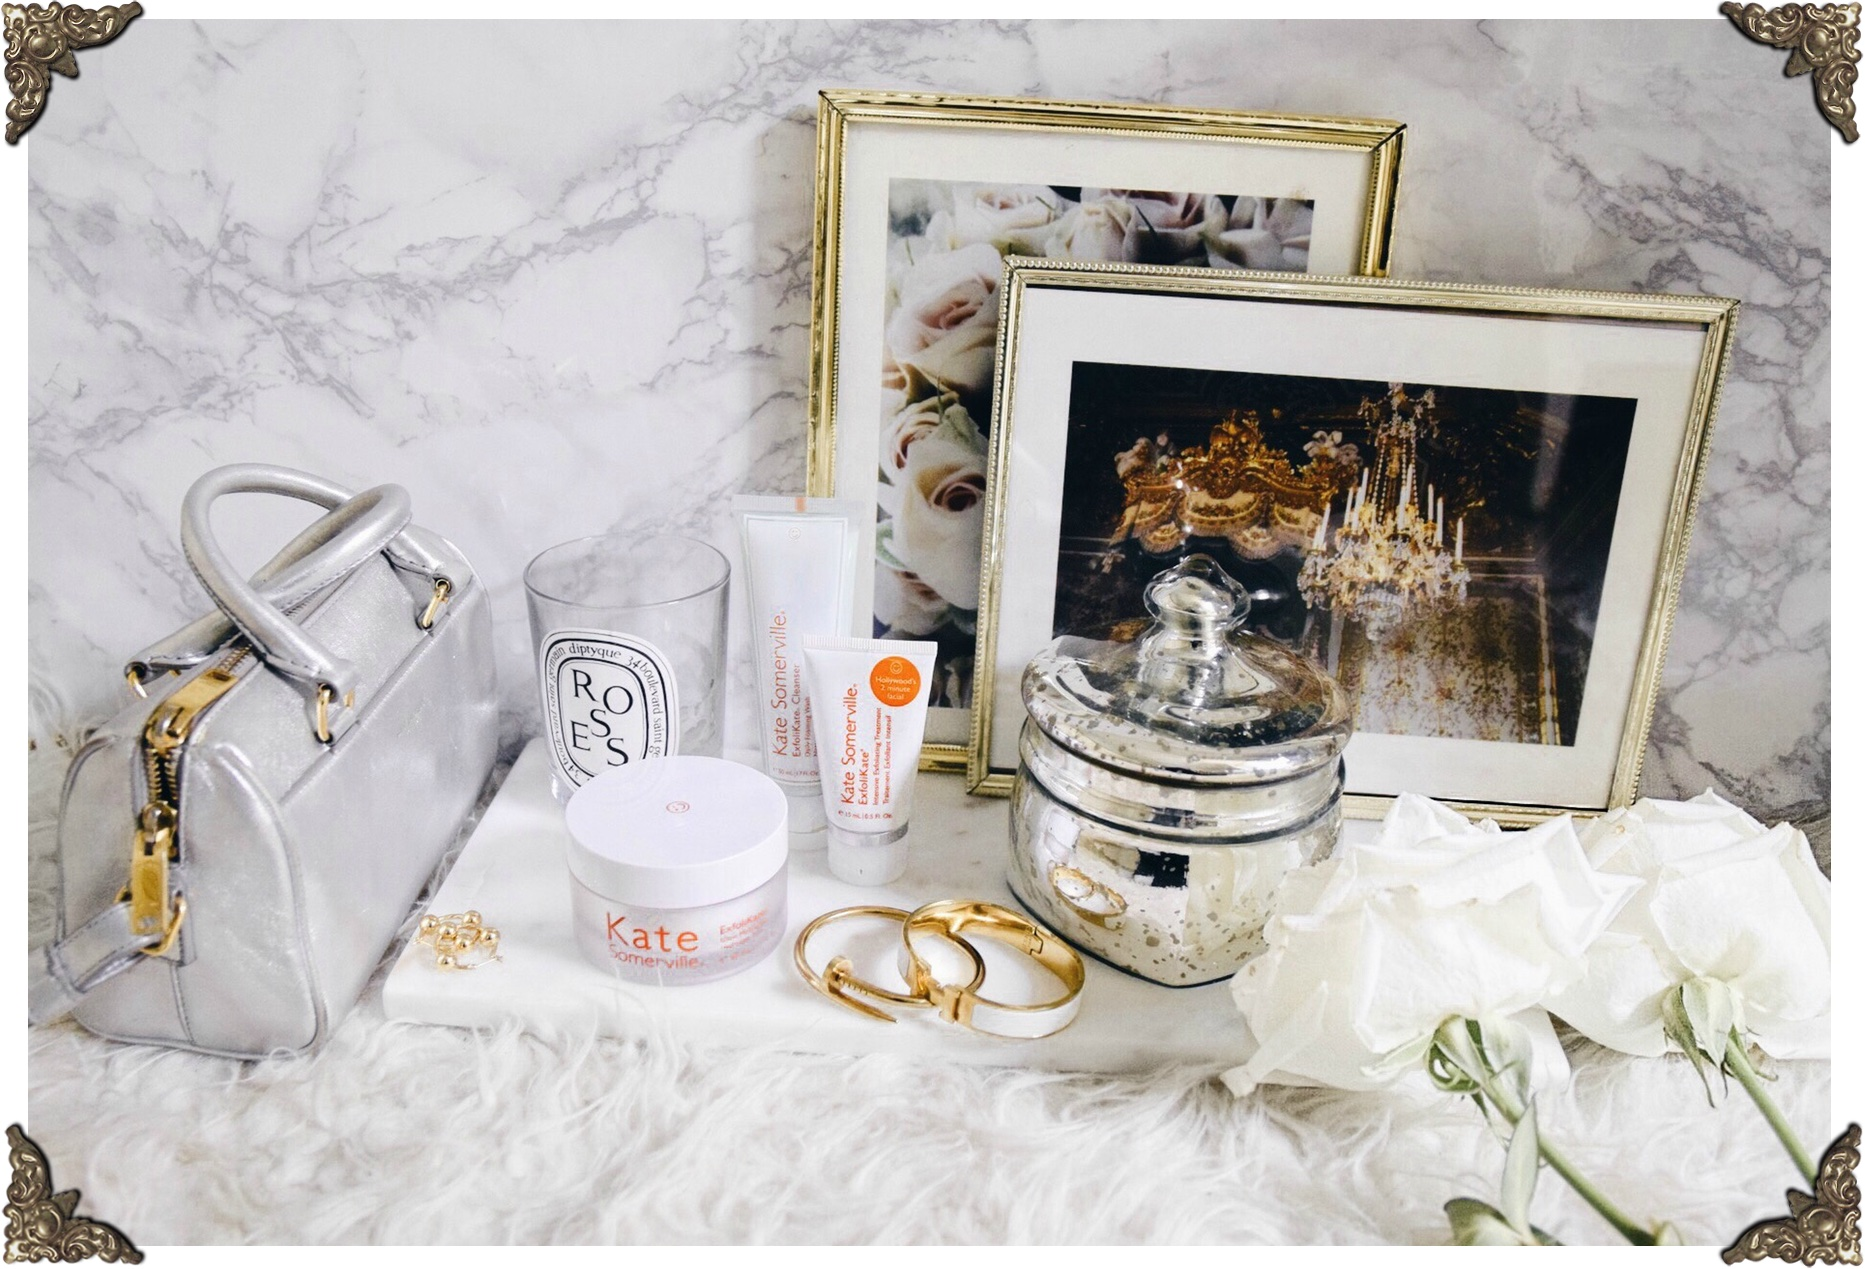 Kate Somerville ExfoliKate Glow Moisturizer // On My Vanity Beauty Series Exfolikate Cleanser & Scrub // Los Angeles Fashion Blogger Daphne Blunt: To Style, With Love